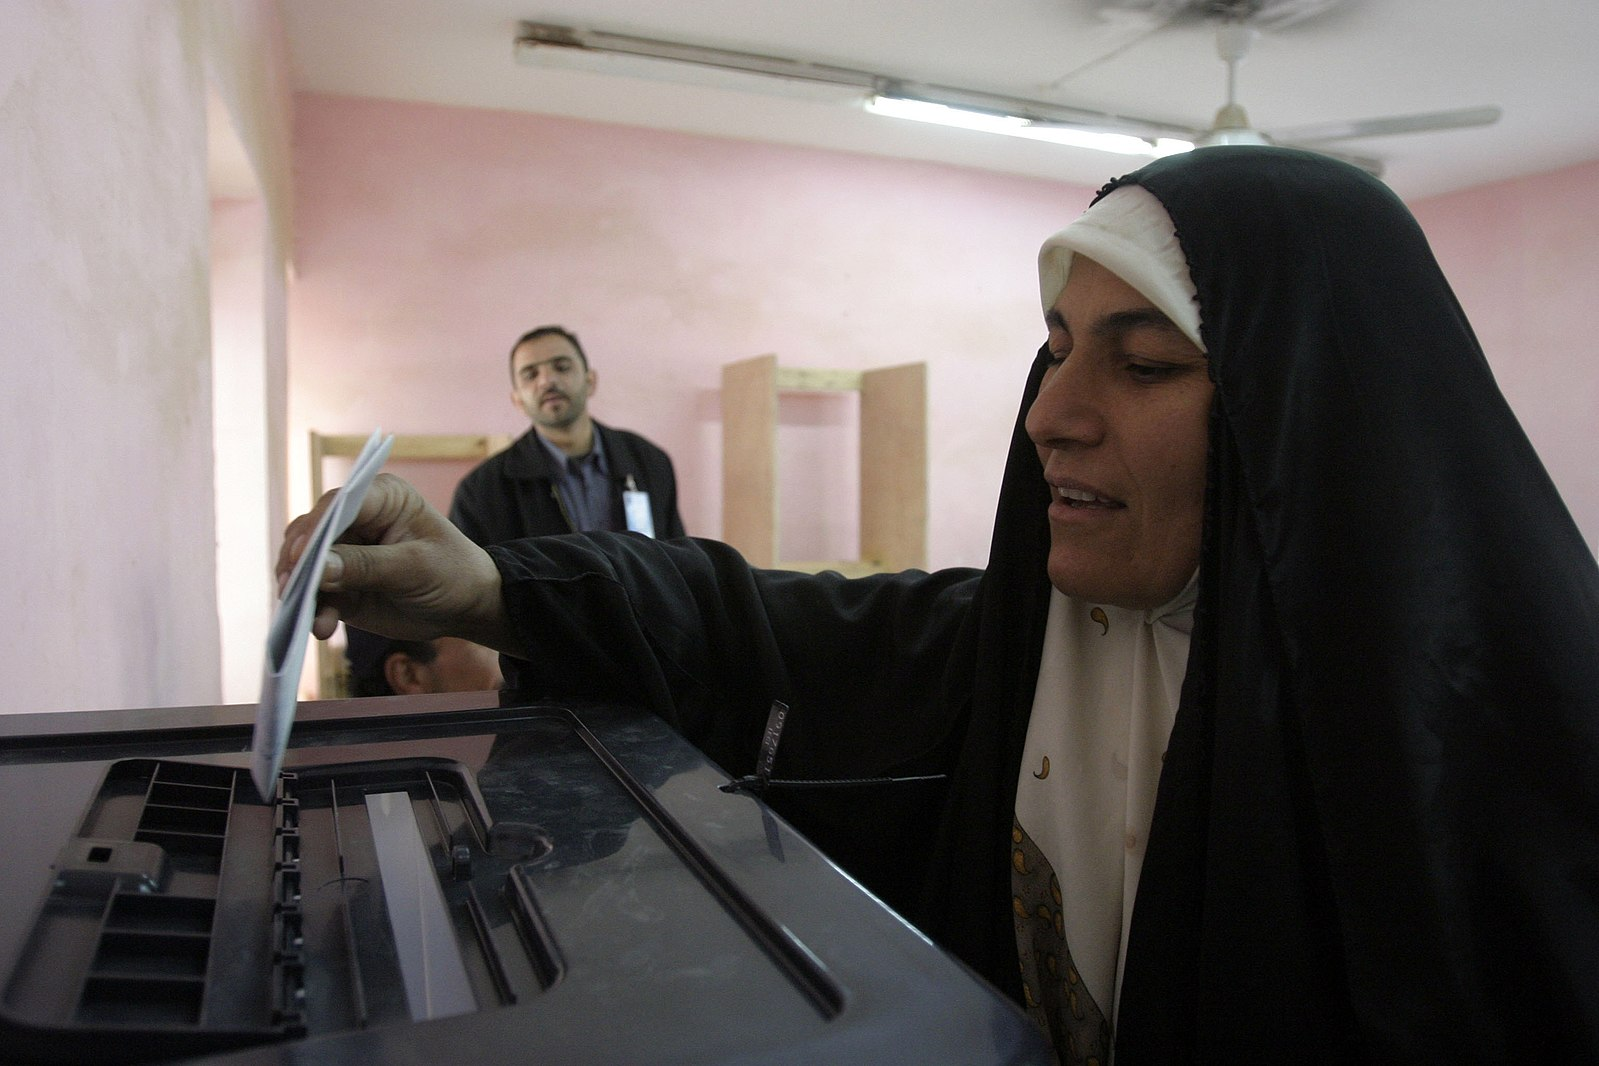 A woman drops a ballot into a ballot box